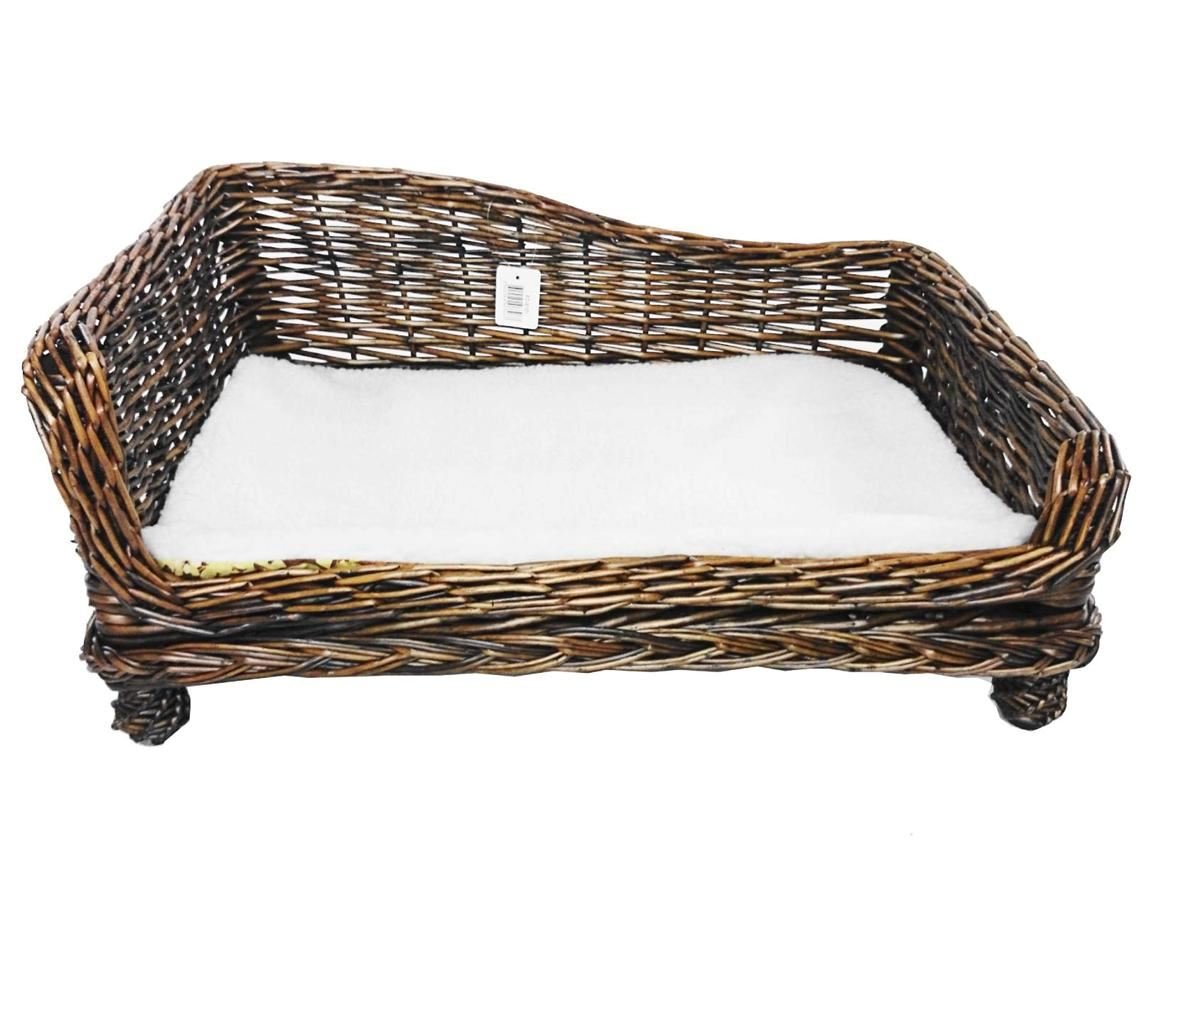 brown large big huge xl dogs wicker pet bed basket seat couch padded cushion ebay. Black Bedroom Furniture Sets. Home Design Ideas